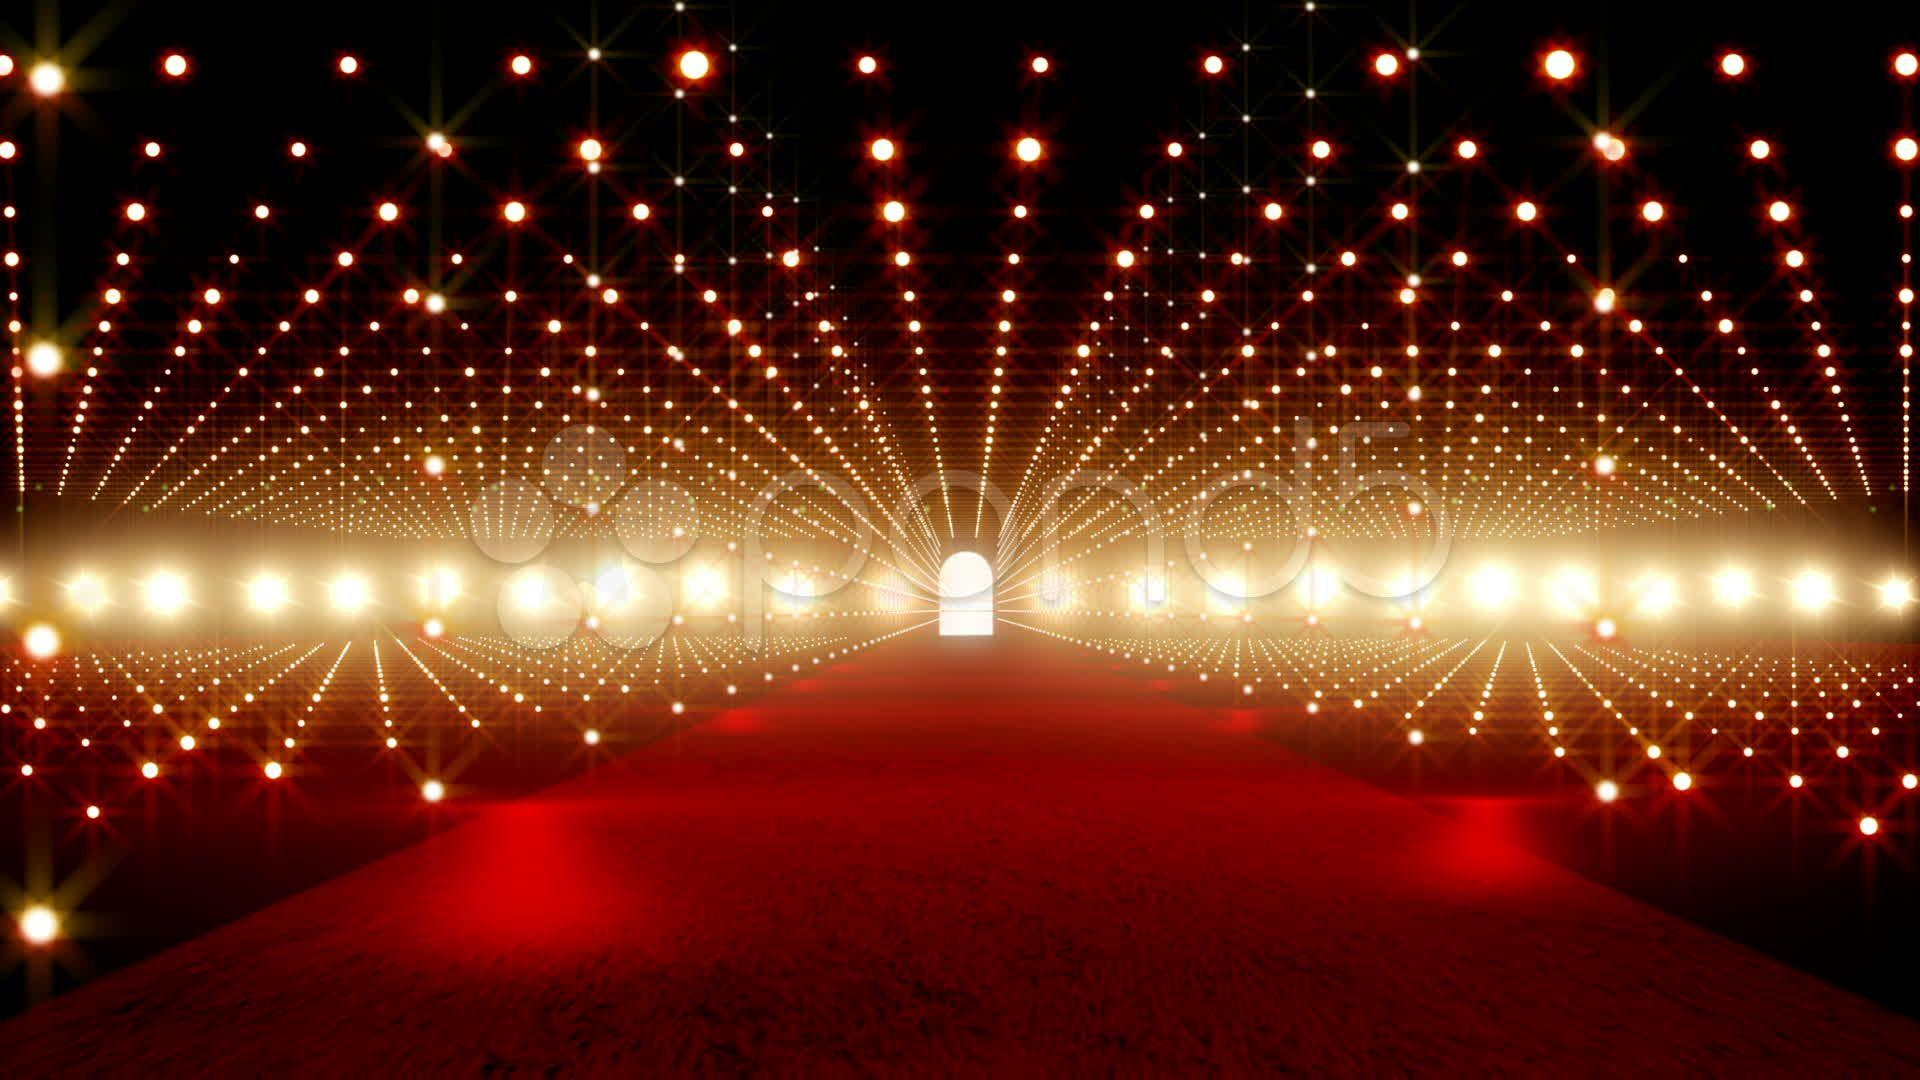 Red Carpet Backgrounds - Wallpaper Cave